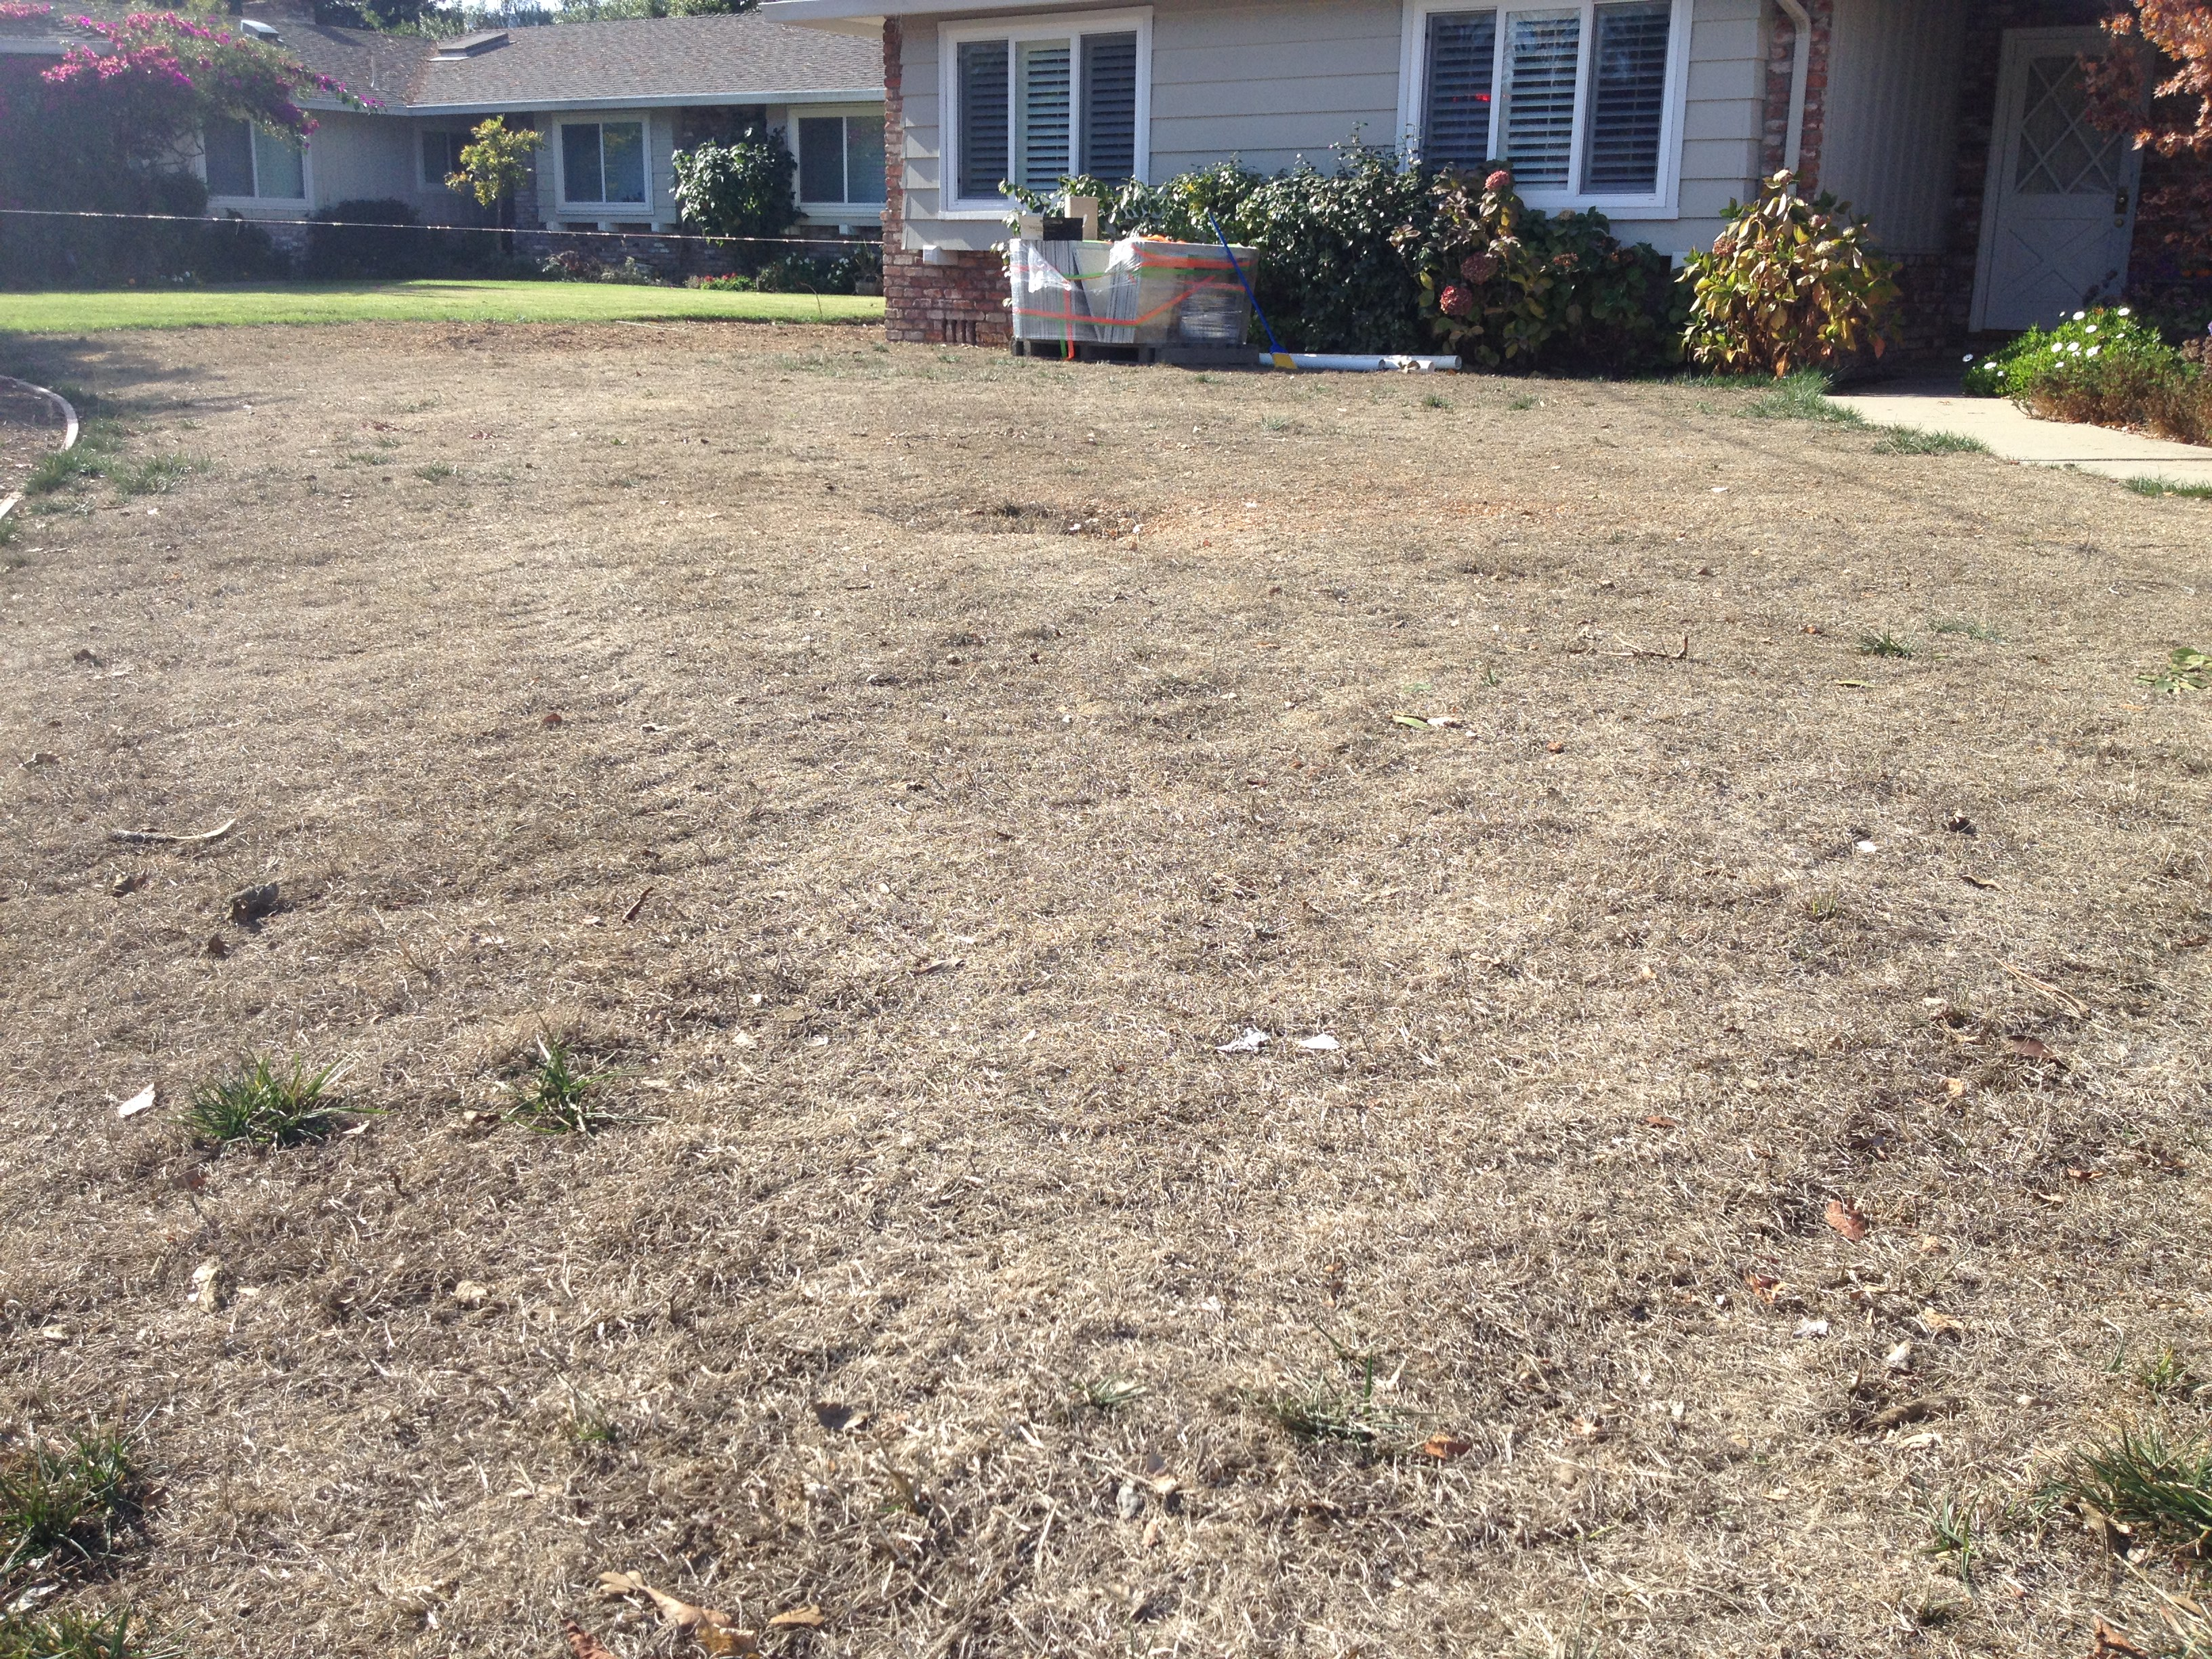 California Drought Boosts Cash For Grass Programs